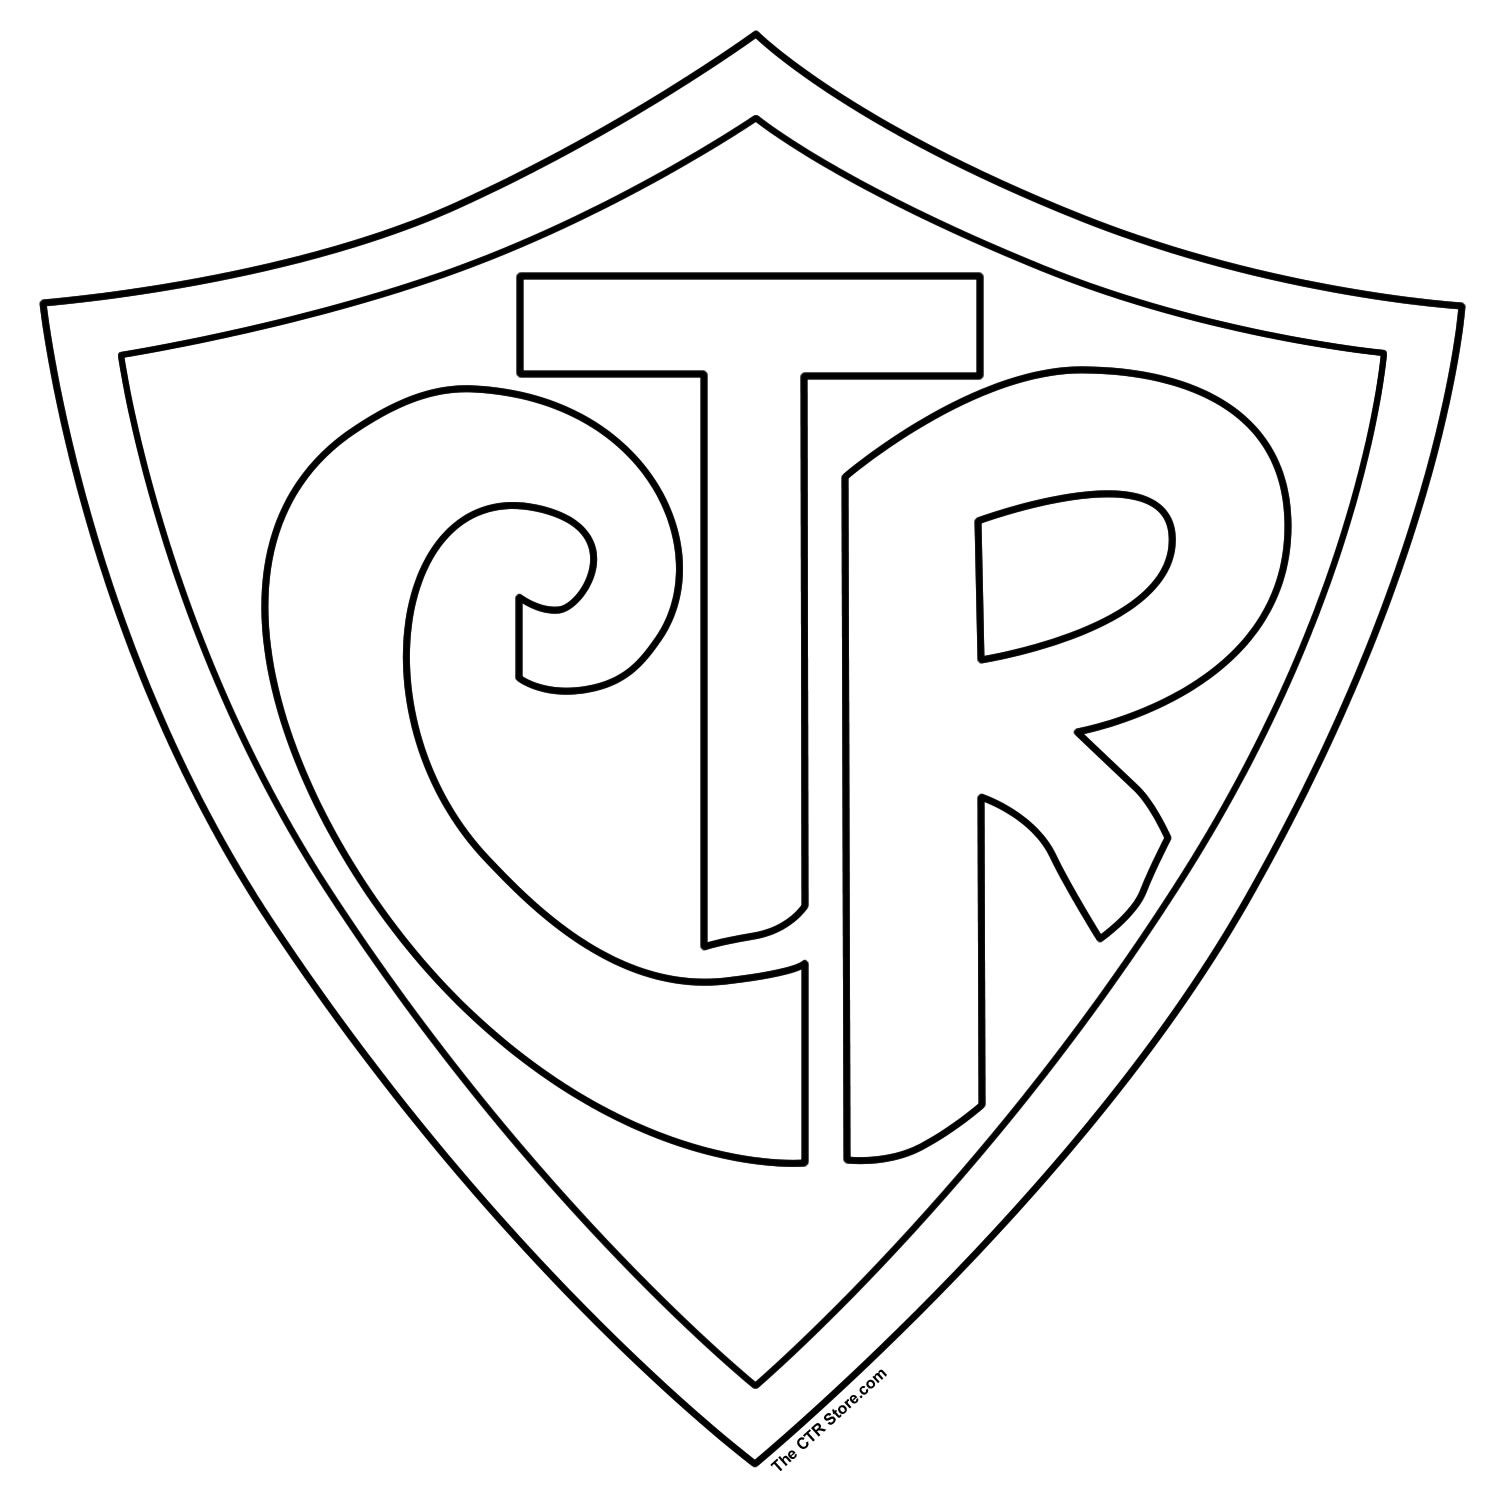 Ctr Shield Coloring Page Ctr Shield Lds Coloring Pages